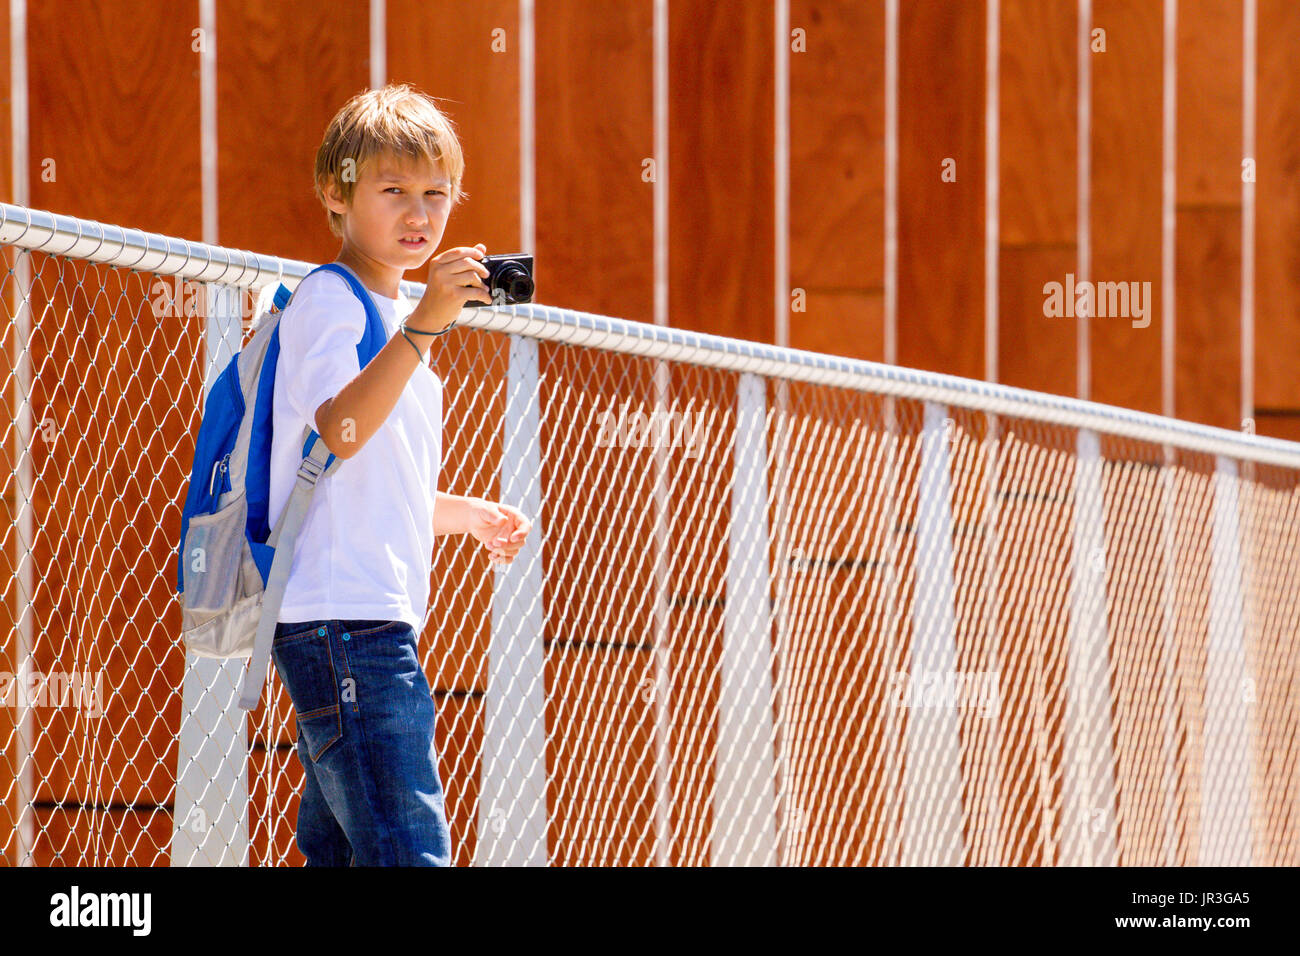 Boy with digital camera taking pictures outdoor in the city - Stock Image